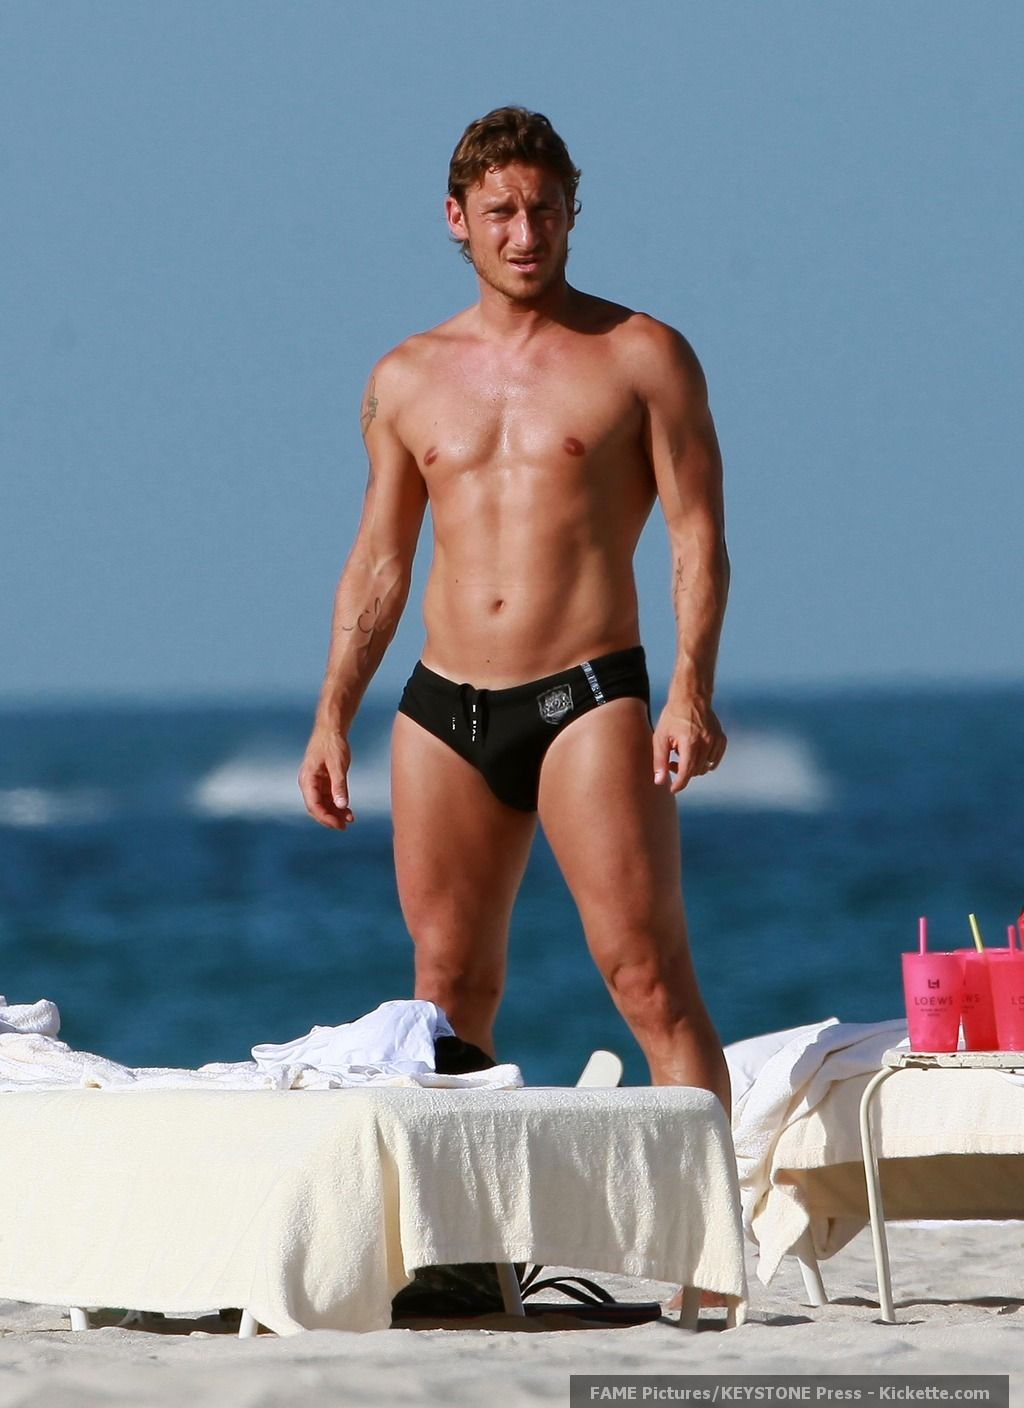 Francesco Totti representing Italy LOL Smoking hot